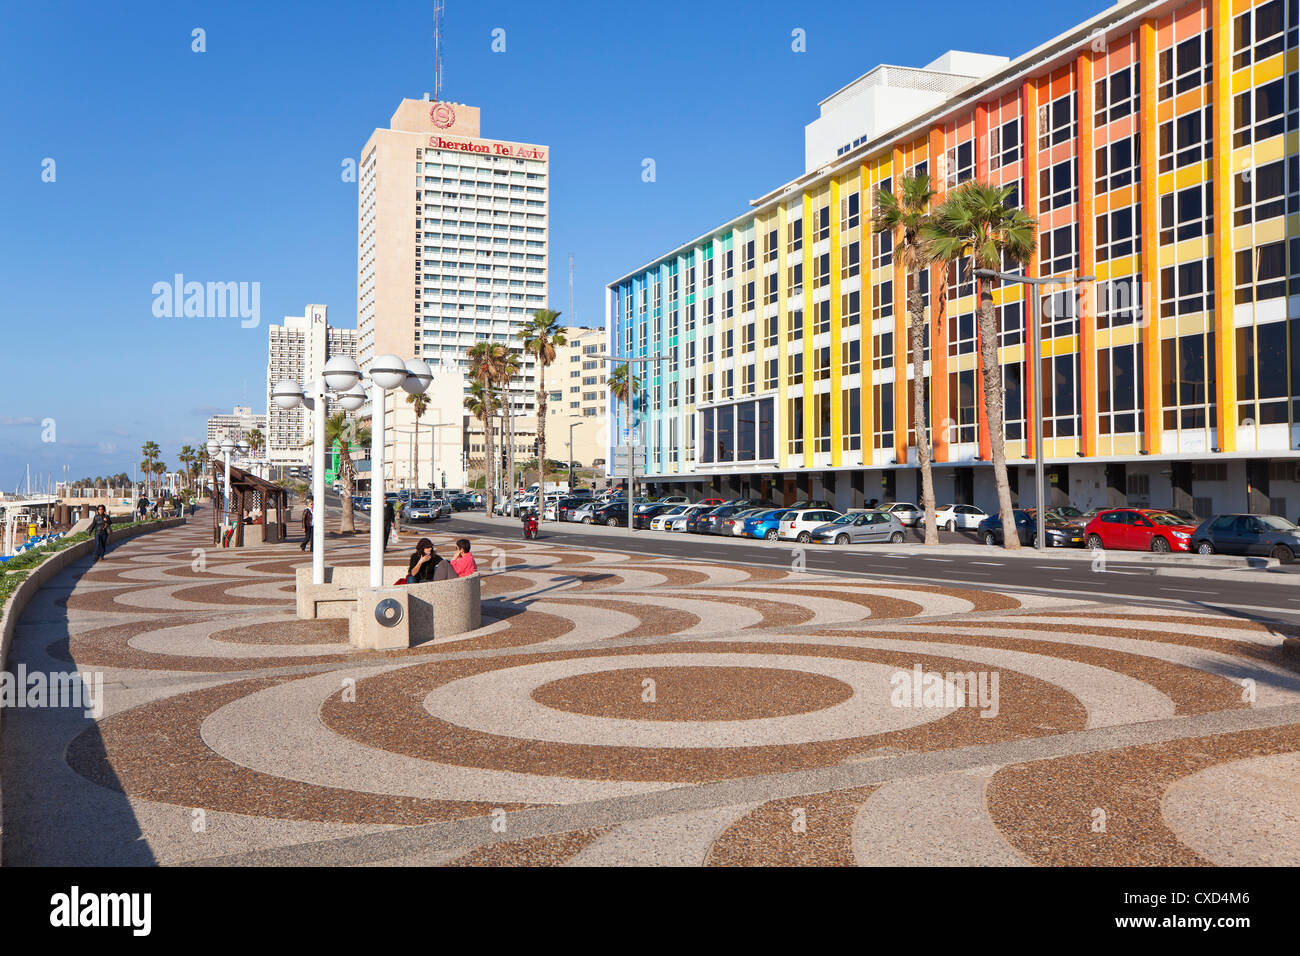 Beachfront promenade in front of the colourfully decorated hotel facades, Tel Aviv, Israel, Middle East - Stock Image